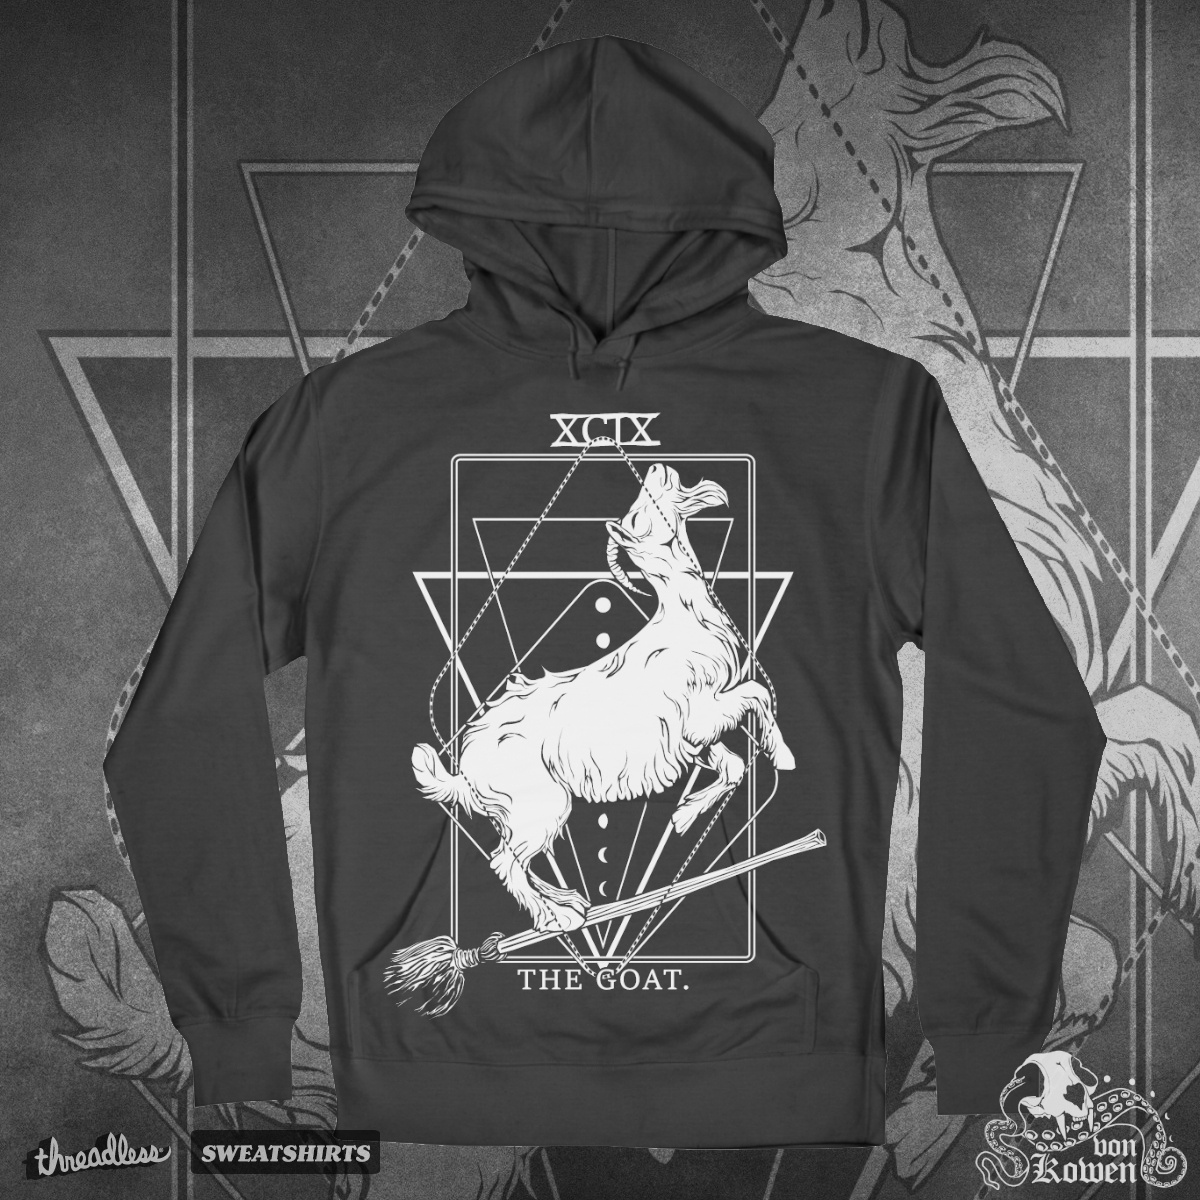 The Goat, a cool t-shirt design